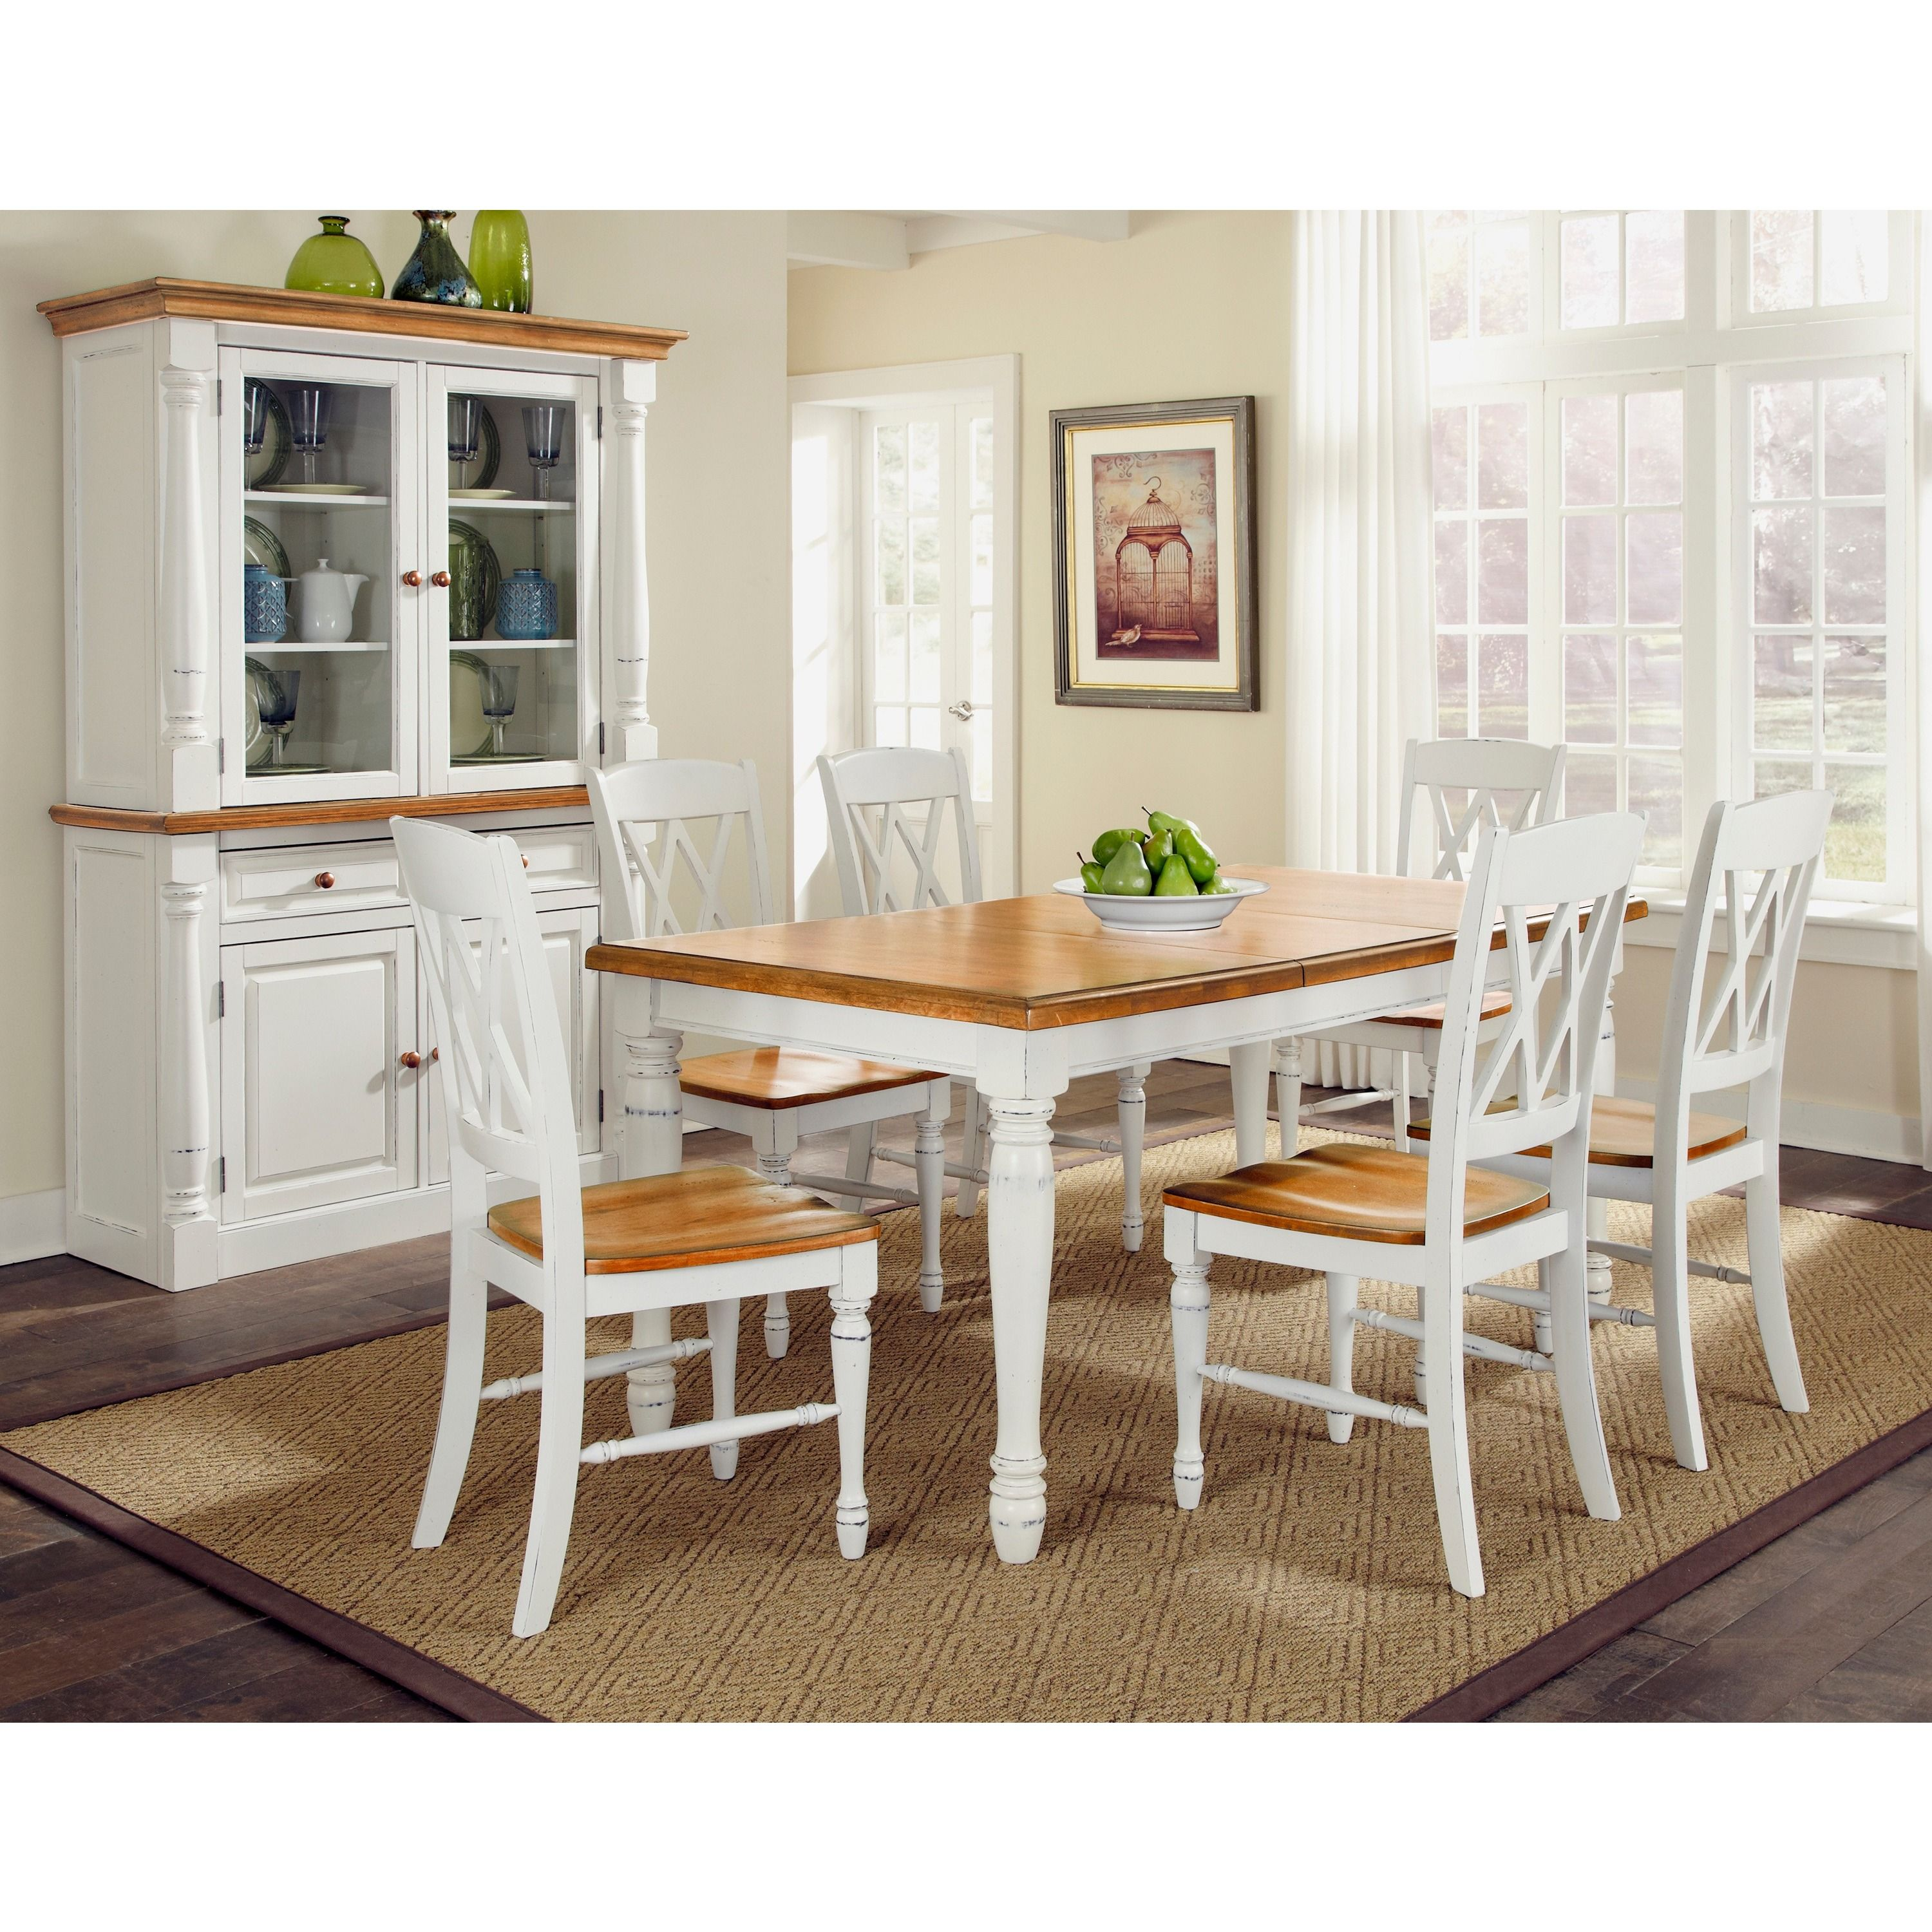 Home Styles Monarch Dining Table And Chairs Rectangular Set White Size 7 Piece Sets